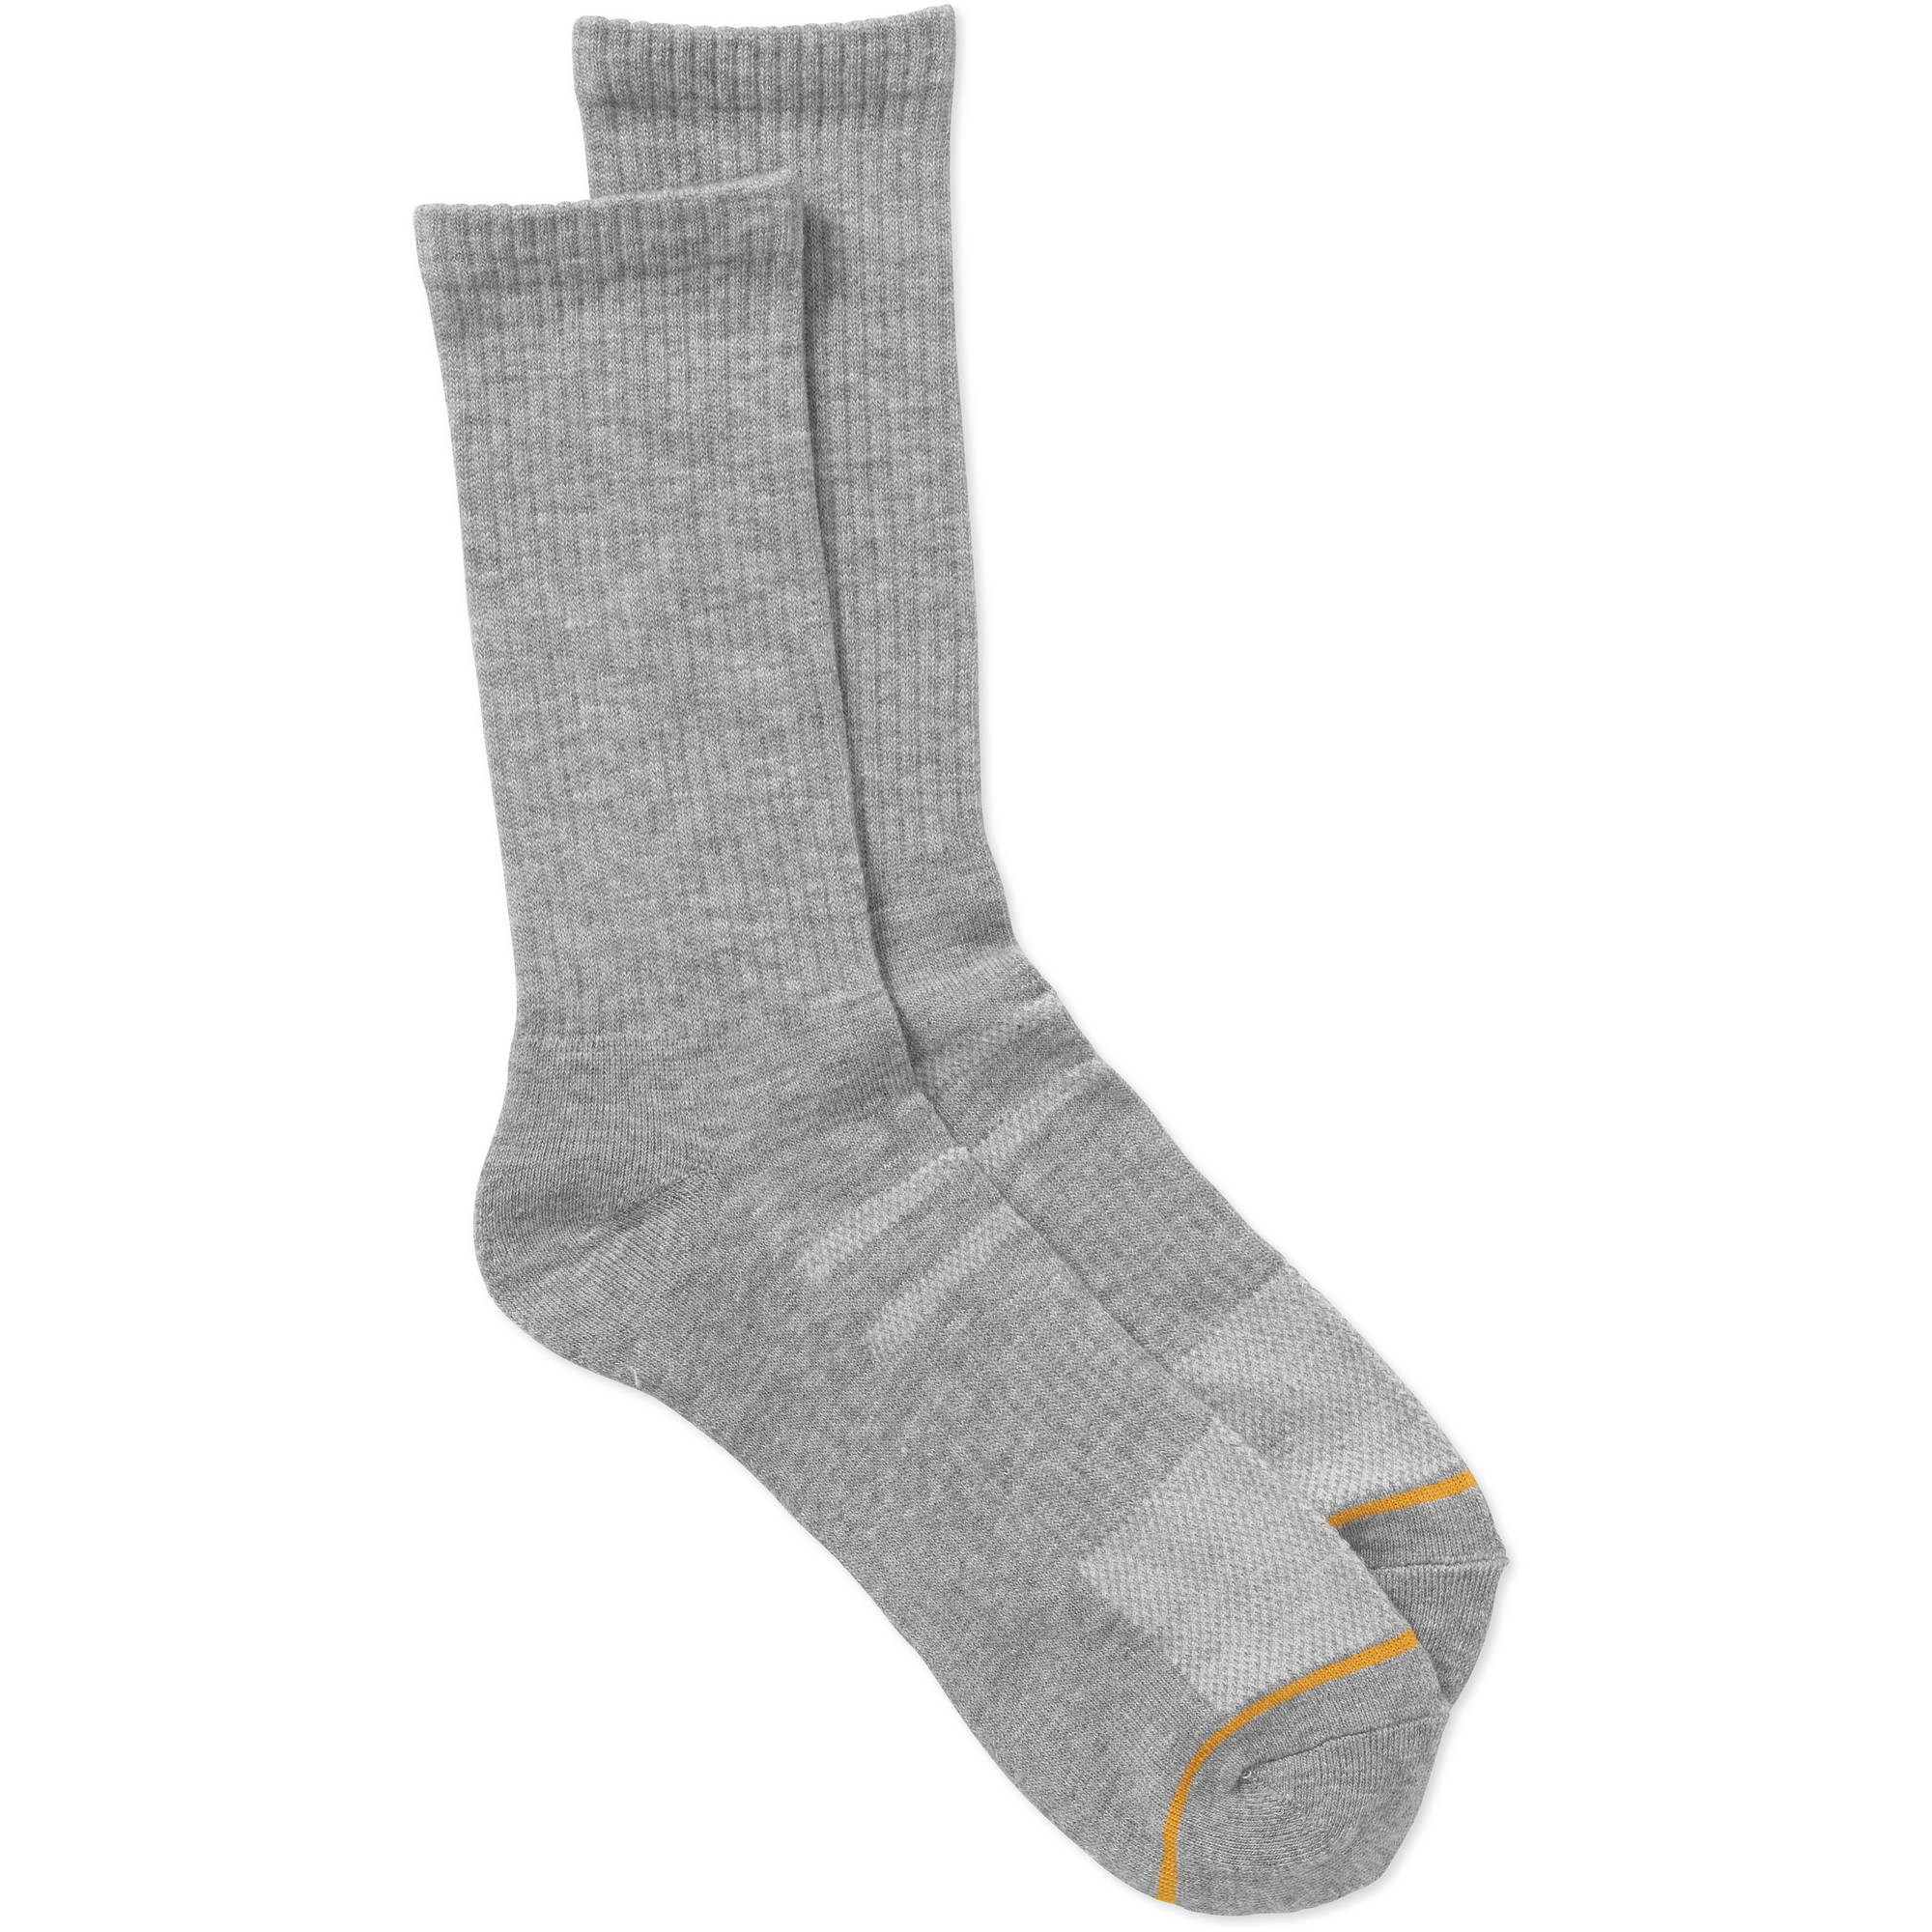 GT by Gold Toe All Day Comfort Rib Cushion Socks, 3-pack